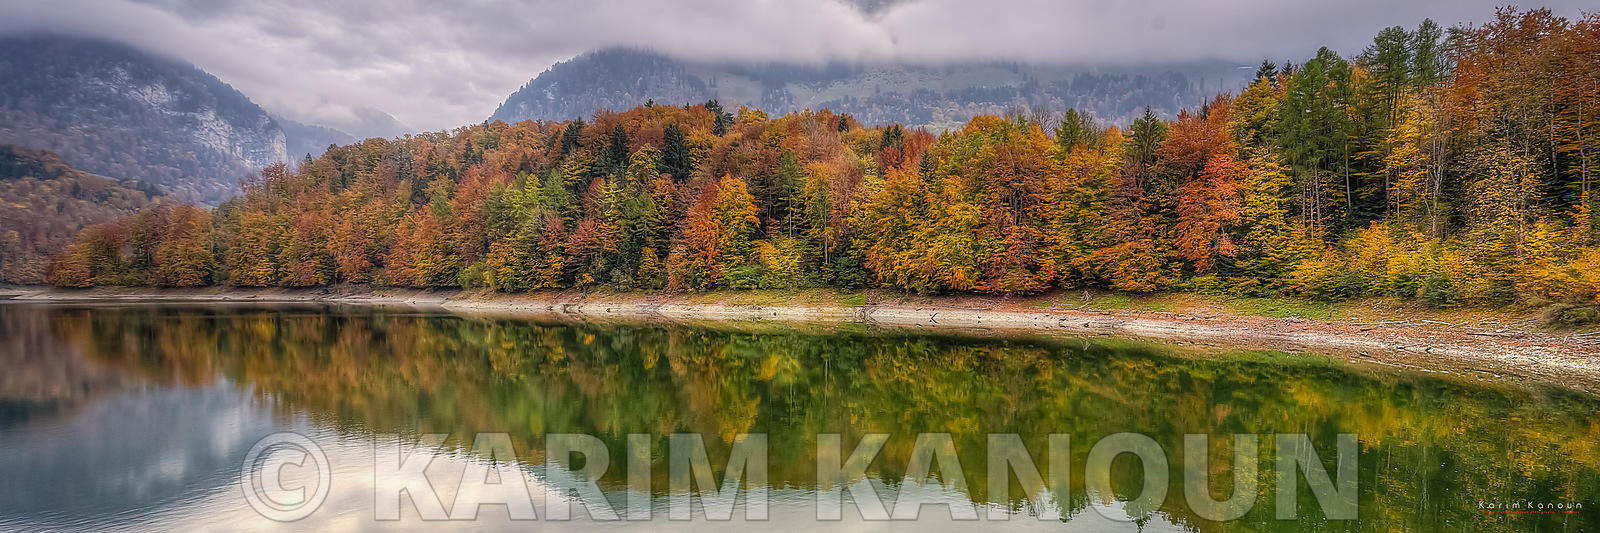 Panorama - Autumn reflection - Gruyère